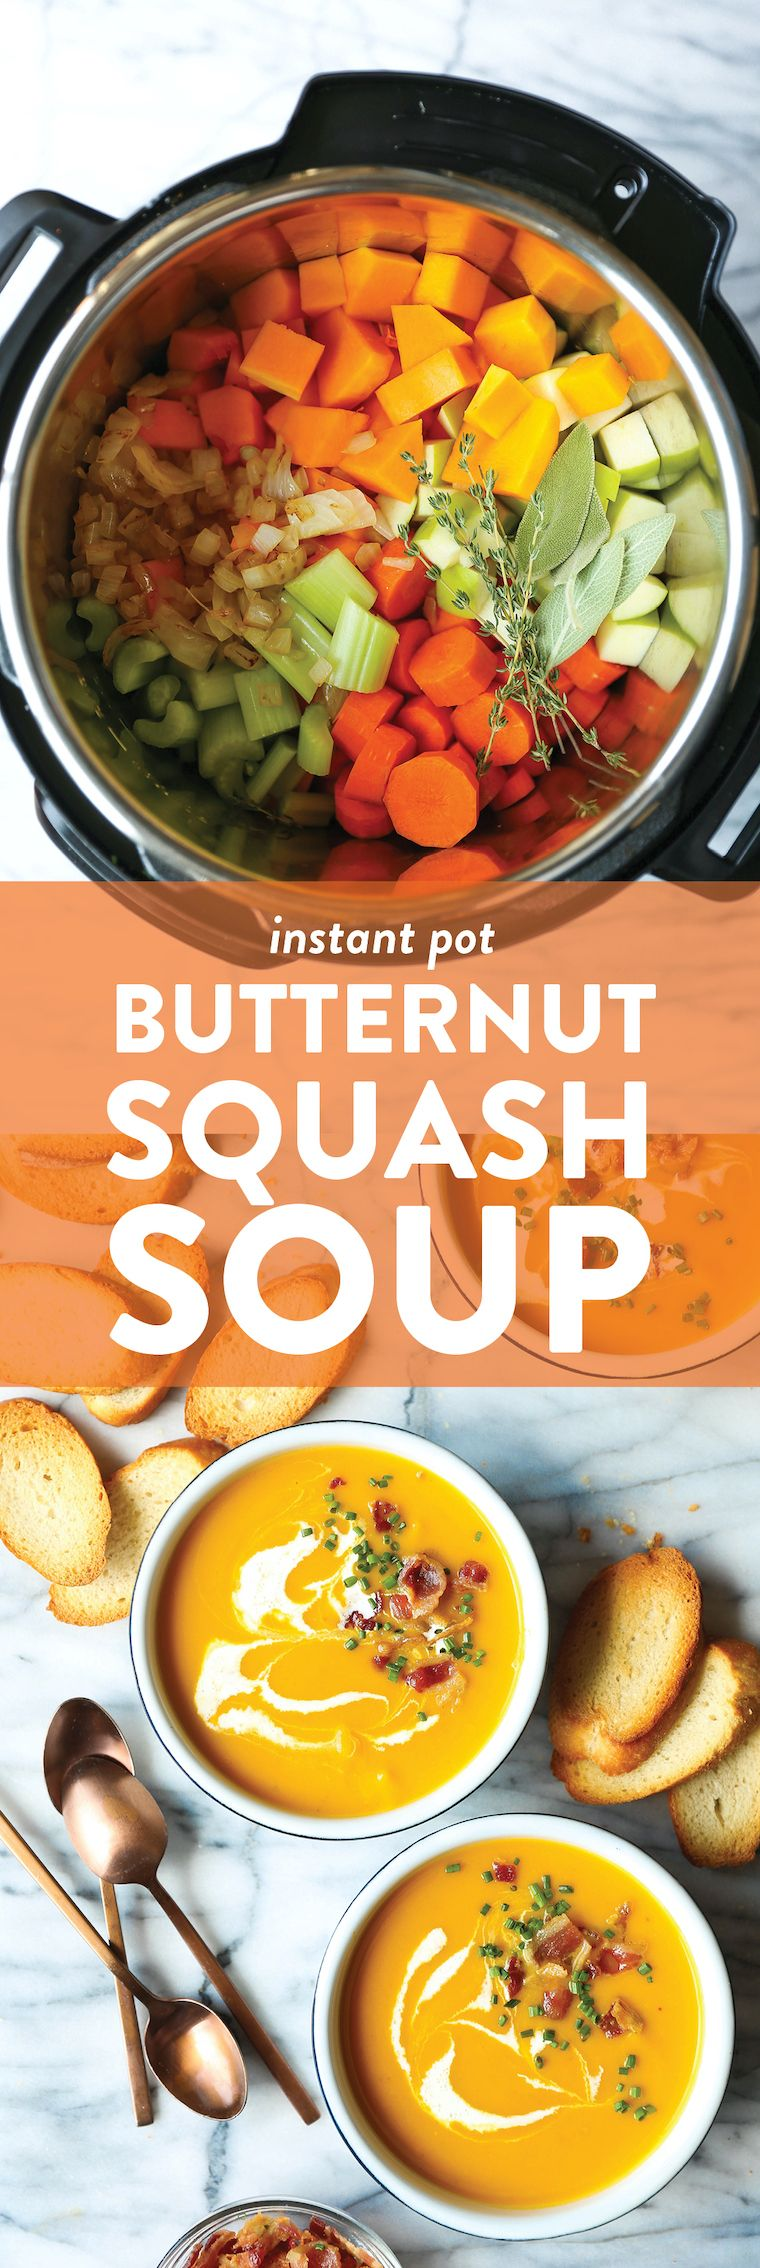 Instant Pot Butternut Squash Soup - Page 3 of 29 Recipe | Damn...